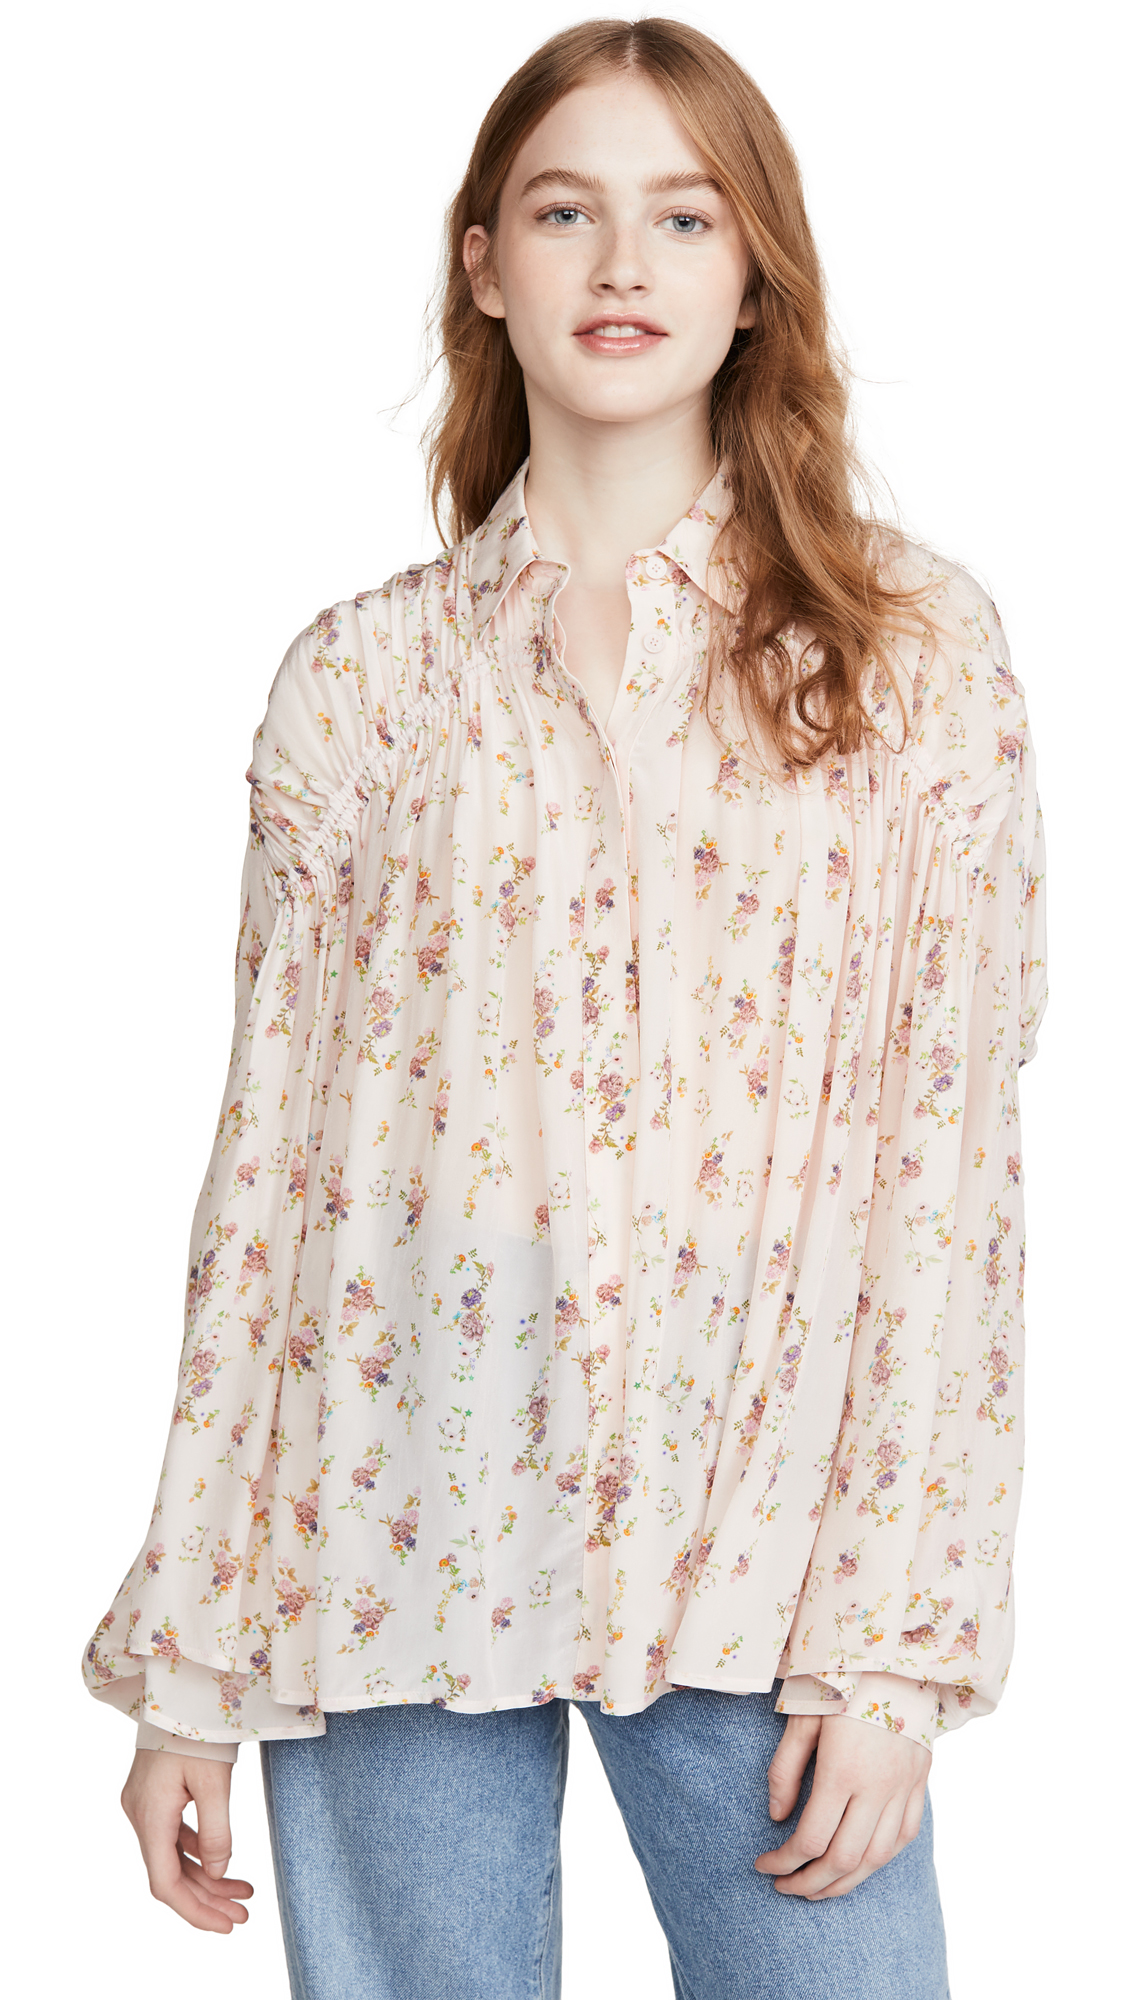 Preen By Thornton Bregazzi Preen Line Winni Blouse - 50% Off Sale